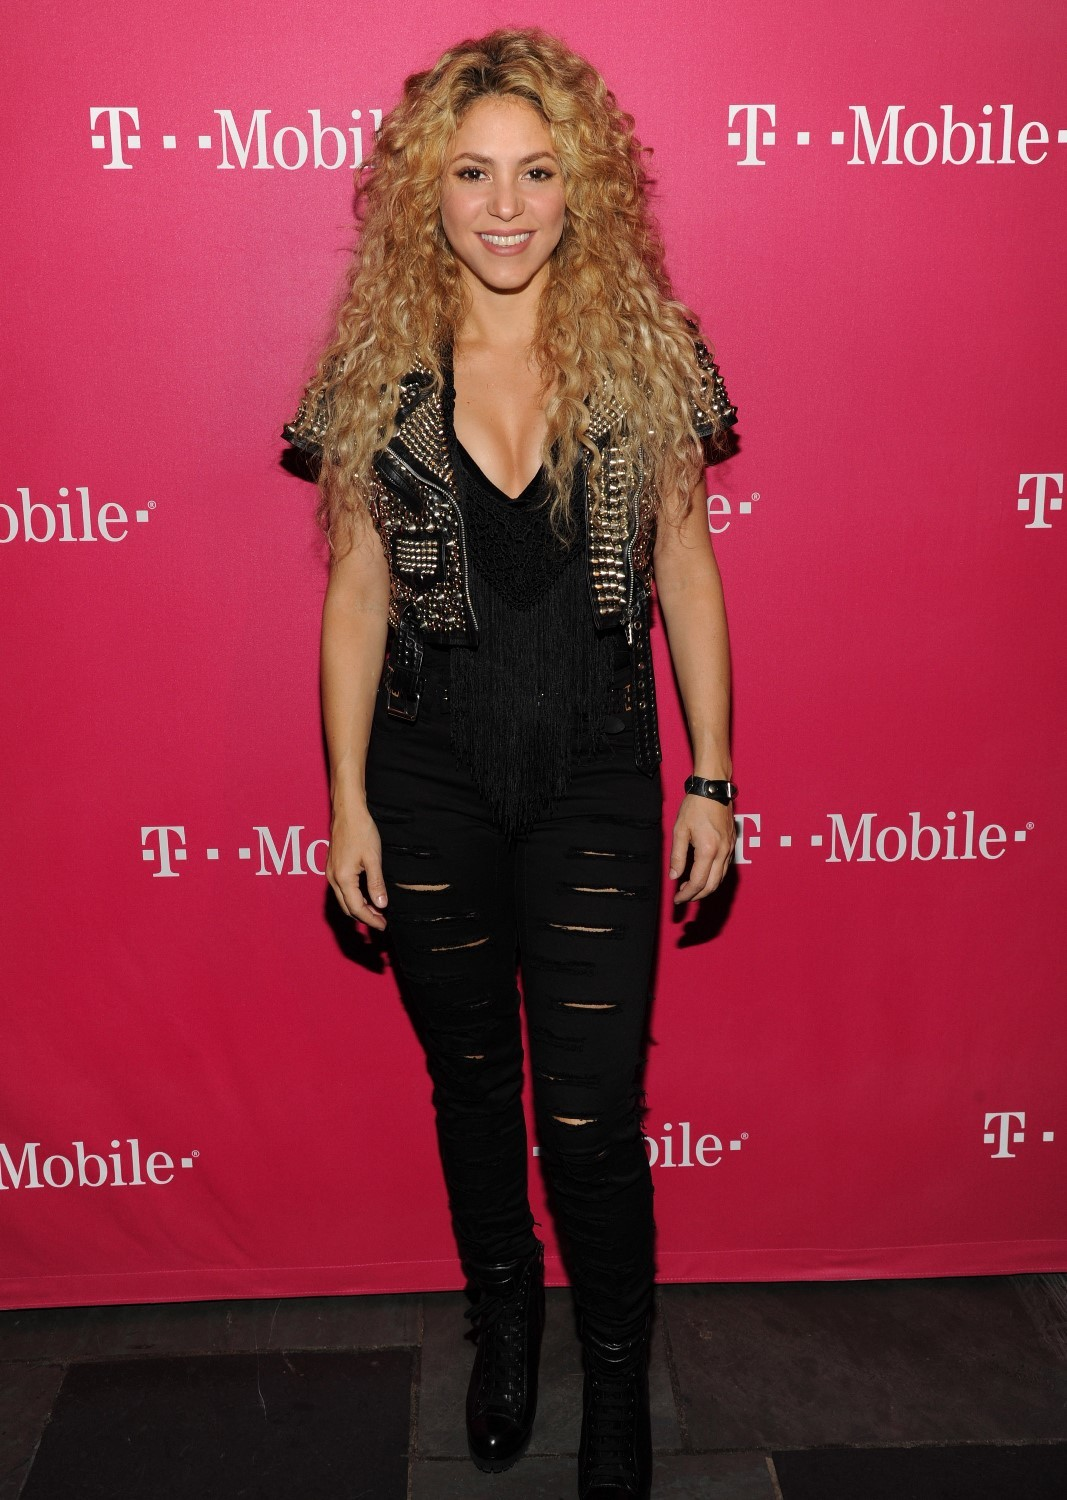 Shakira at T Mobile Event